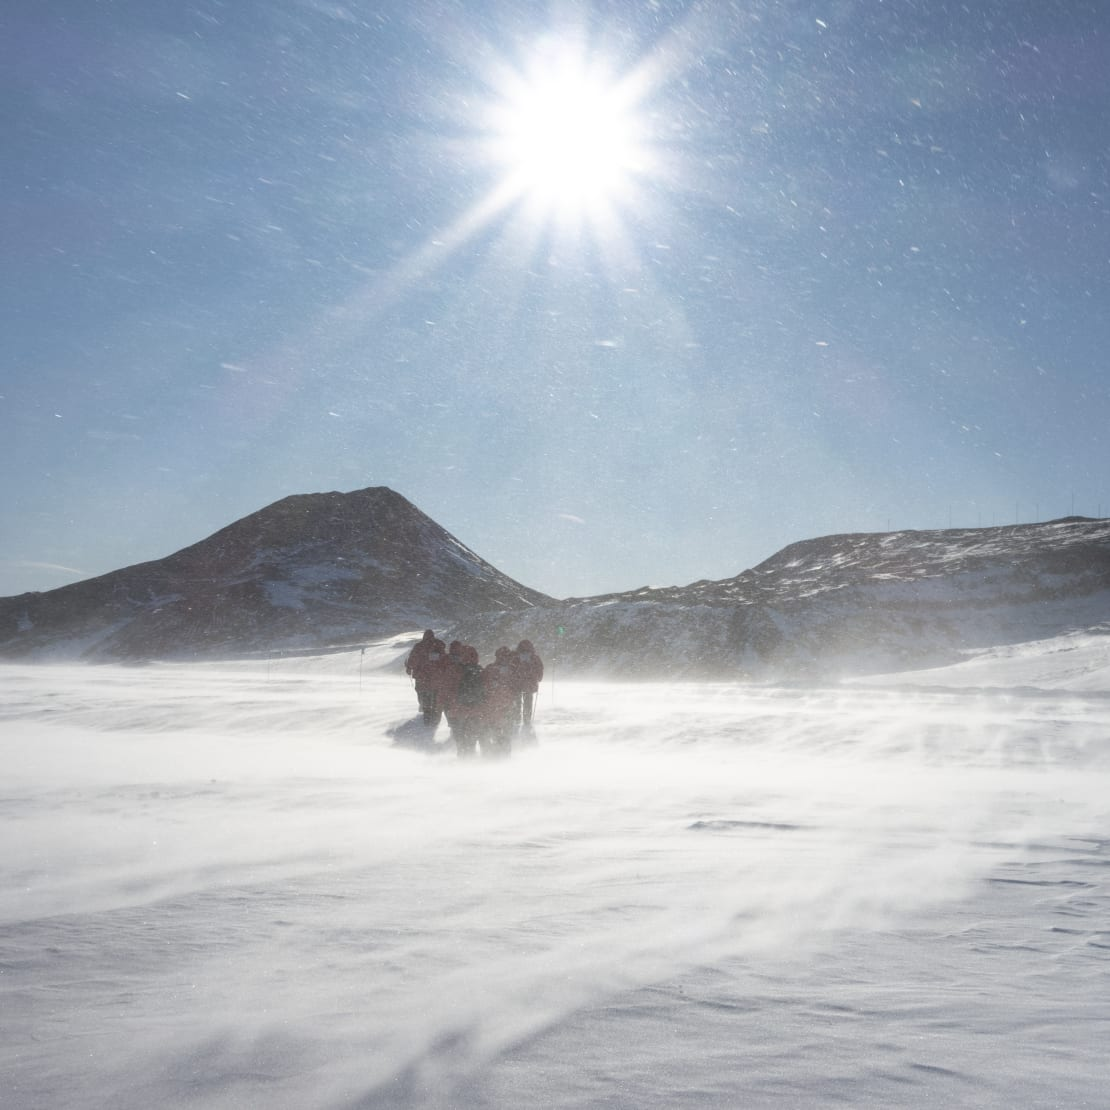 Bright sun in sky, with four people in parkas walking and huddled against strong blowing snow.